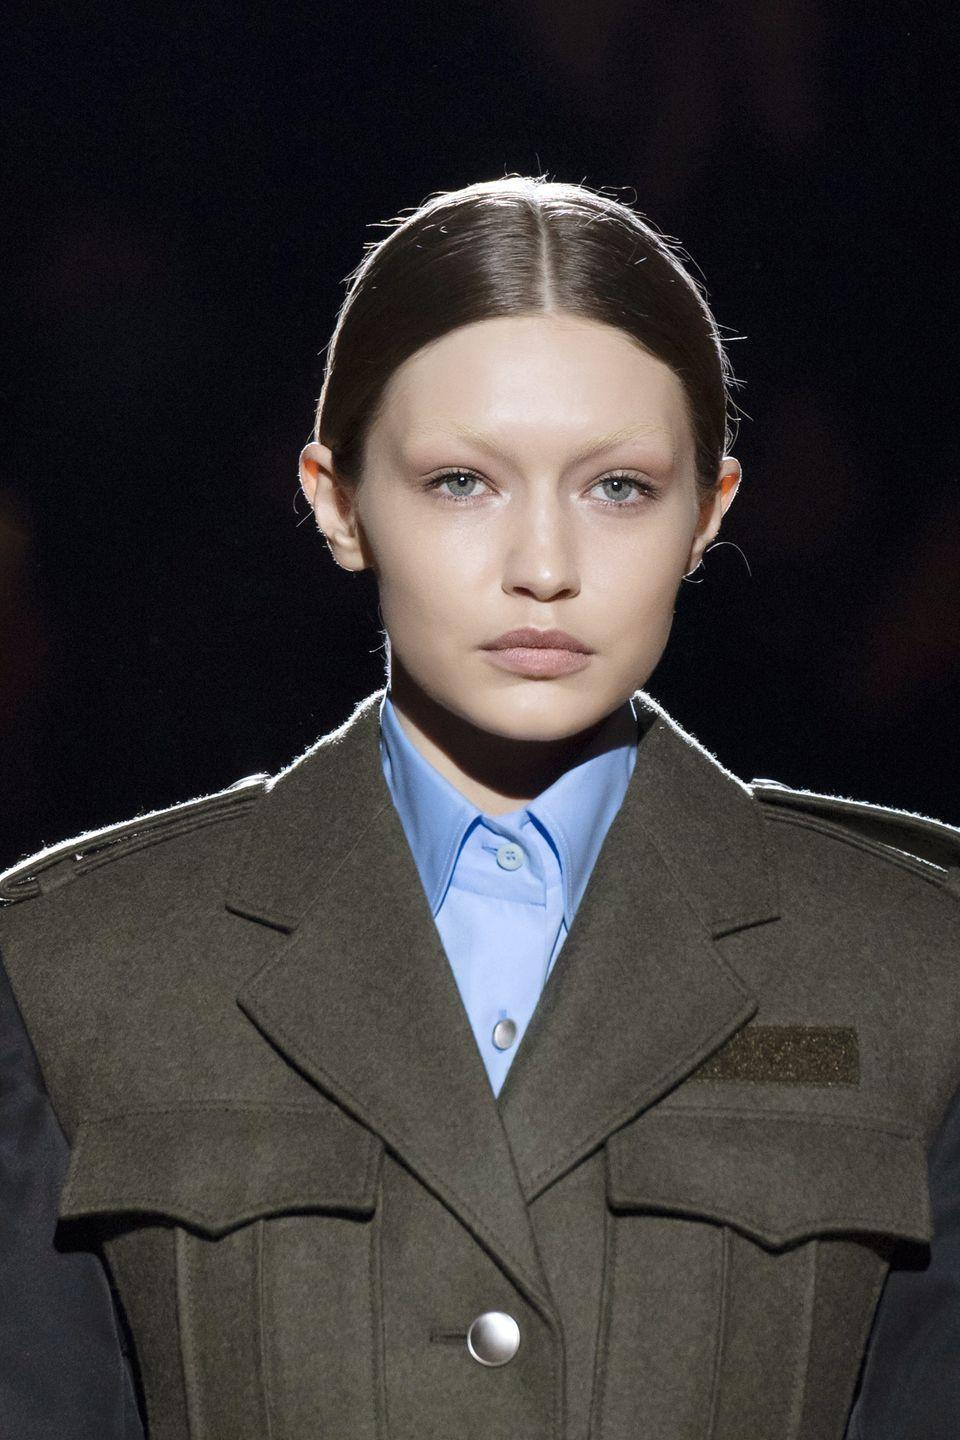 <p>You know the old saying 'the brows are the frame of your face'? Well when you're Gigi Hadid and have been blessed with the bone structure of a Grecian sculpture, you can look incredible with or without them (seriously, look at that brow bone). While the transformation was only temporary for the Prada AW19 show, Hadid's barely-there look shows just how much a bleached brow can transform your face. </p>